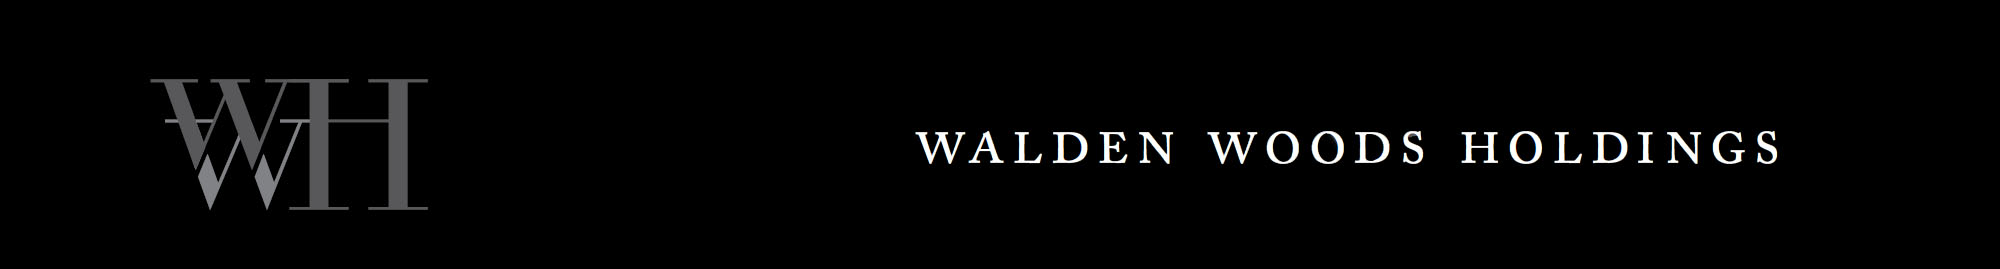 Walden Woods Holdings